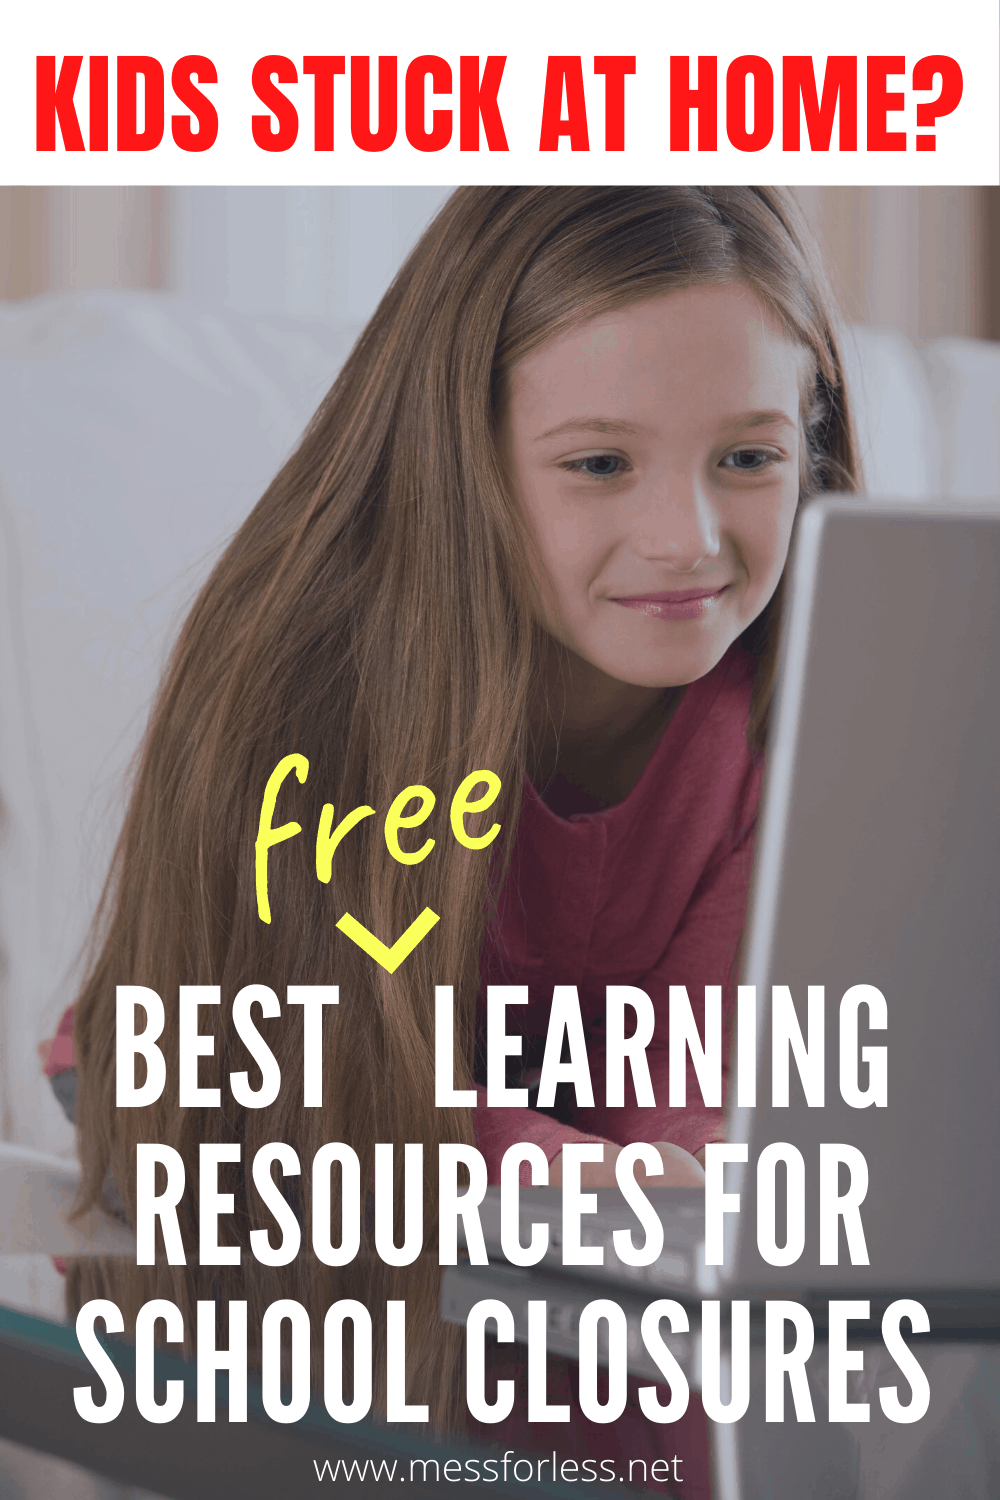 These Free Kids Learning Resources for School Closures will keep kids engaged and learning while they are out of school. Keep their minds sharp during school closings. #freeonlinelearning #Freelearningactivities #learningactivitiesforkids #onlinelearning